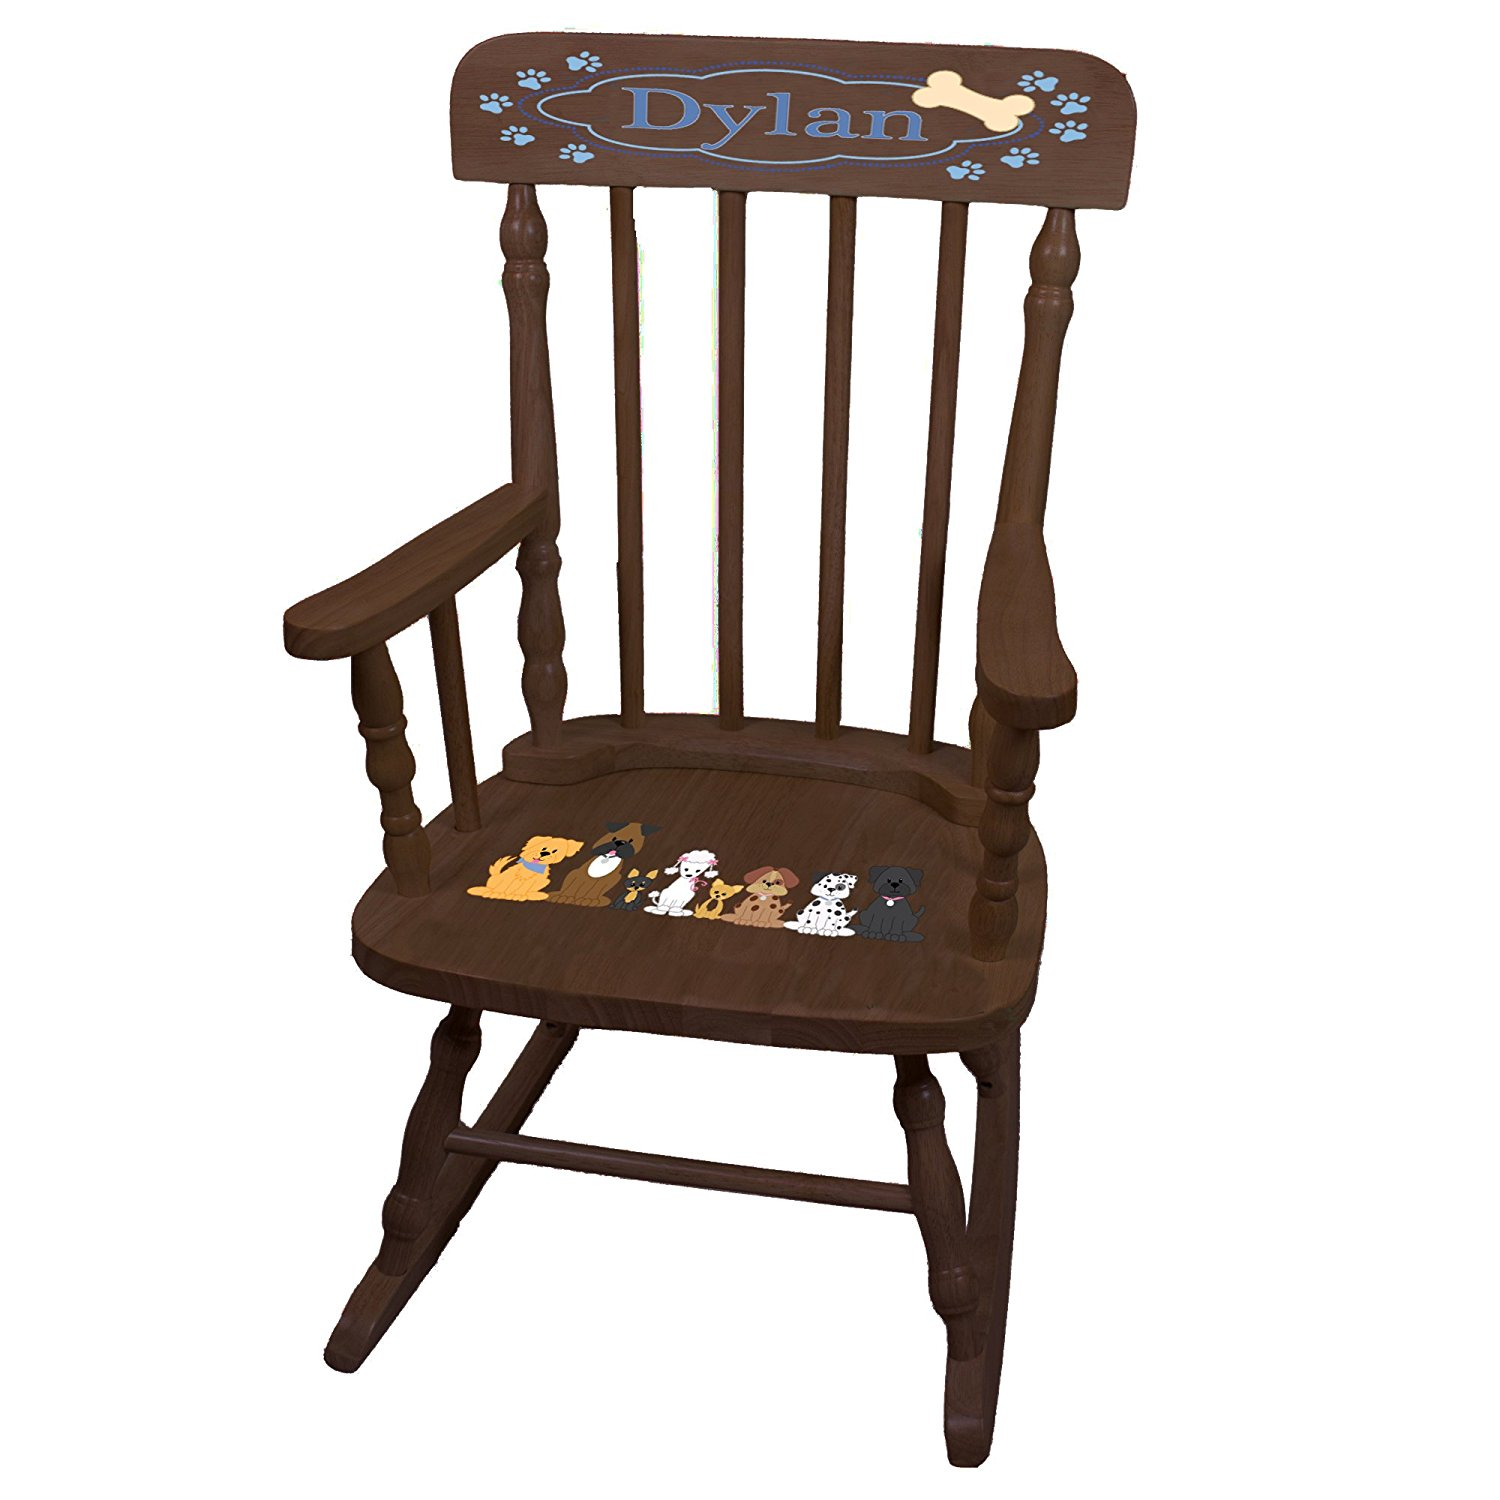 Personalized Blue Dogs Espresso Childrens Rocking Chair